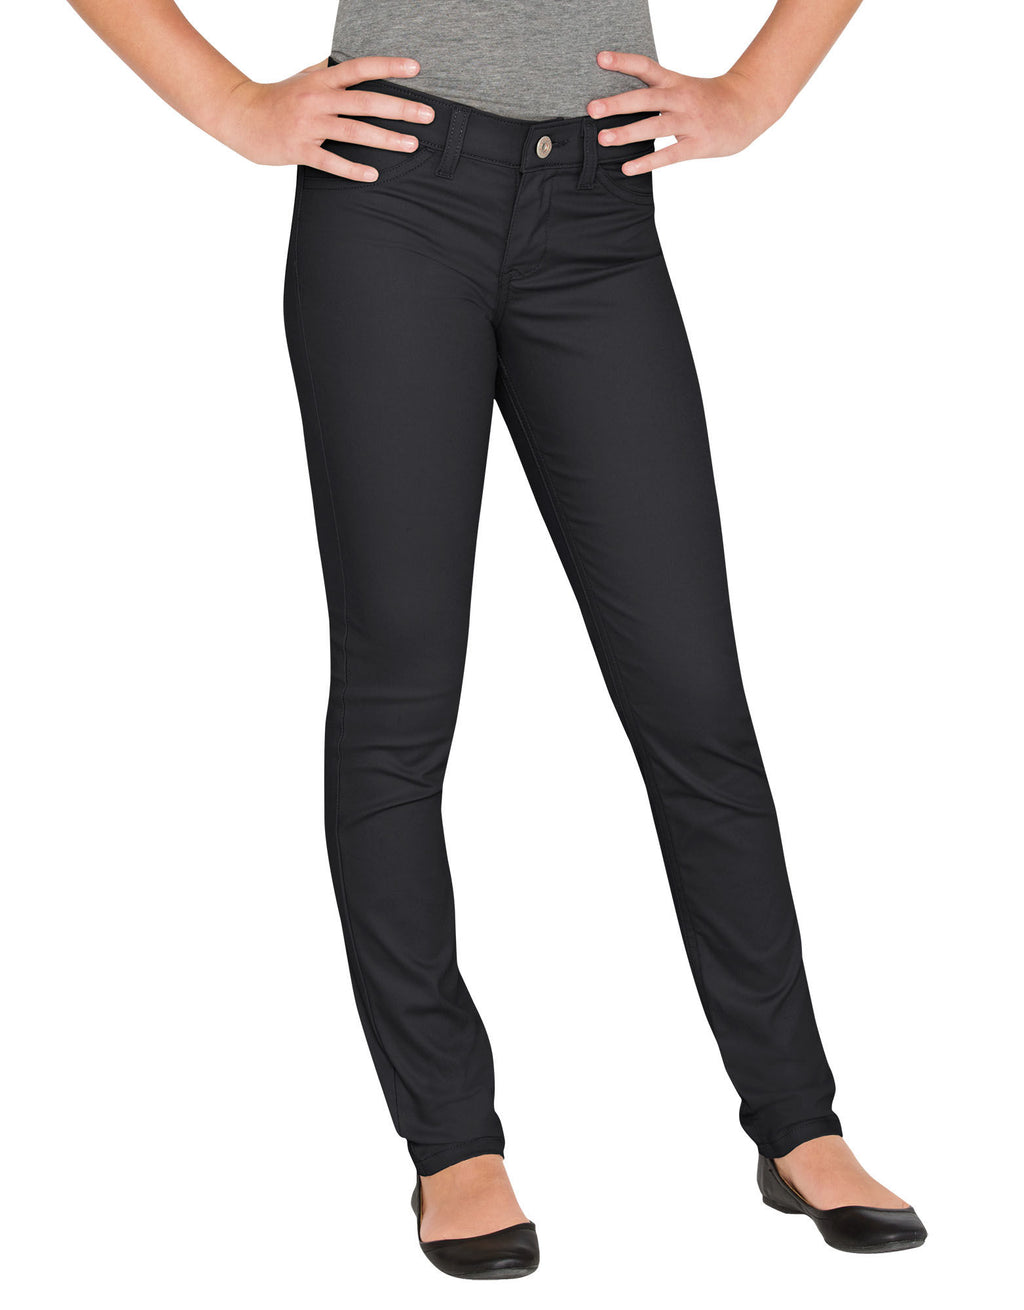 Dickies Girls Super Skinny Fit Skinny Leg Pants, 7-16